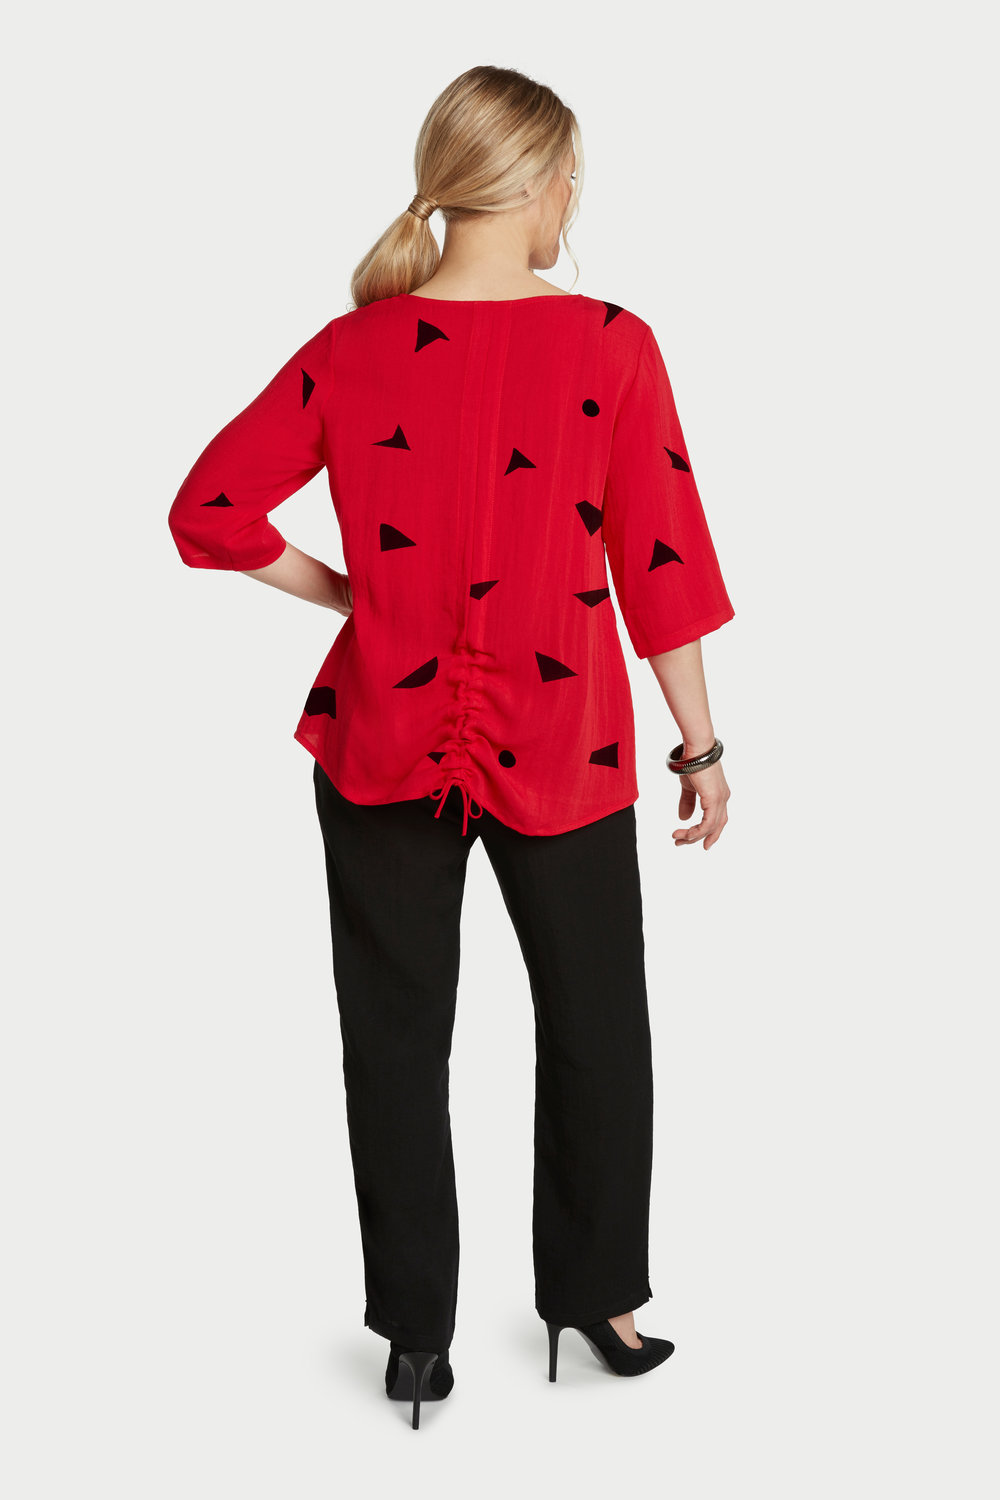 AA263 - Ruched-Back Pullover    Lipstick Shapes - CL2595S